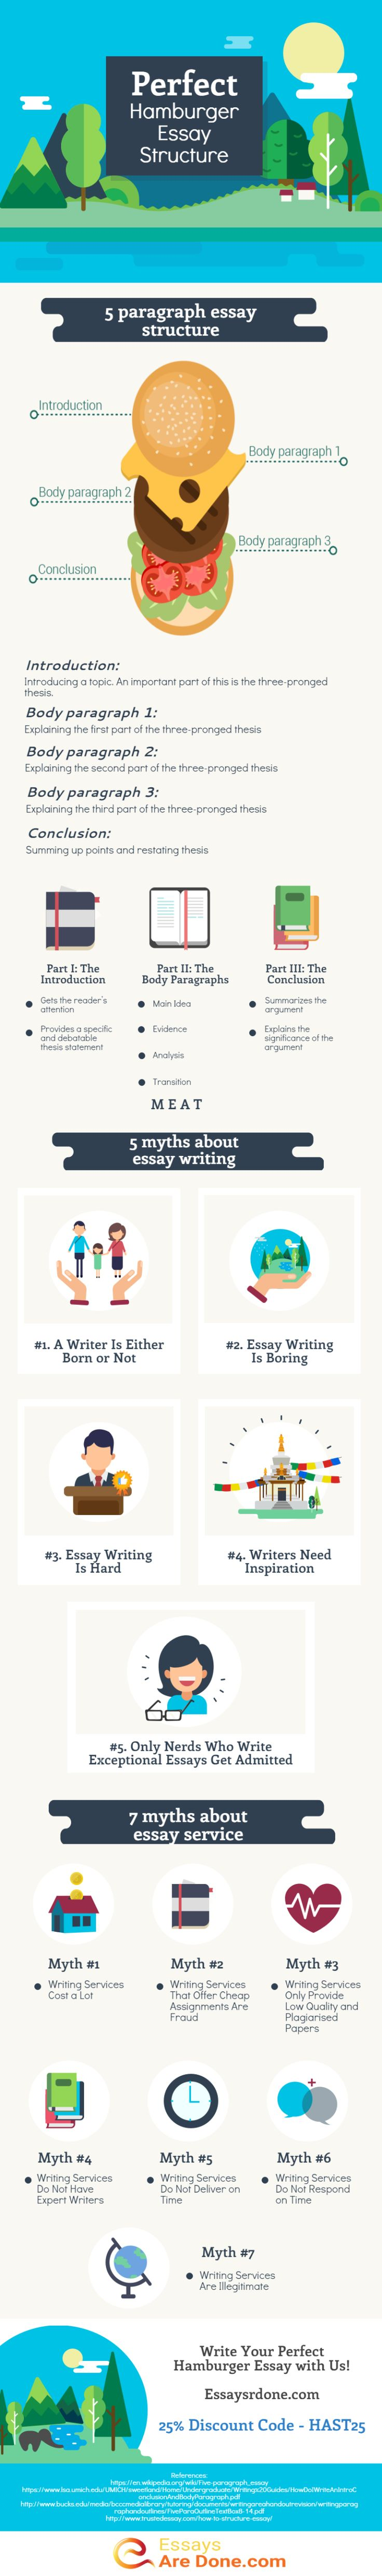 the best essay structure ideas essay tips essaysrdone com perfect hamburger essay